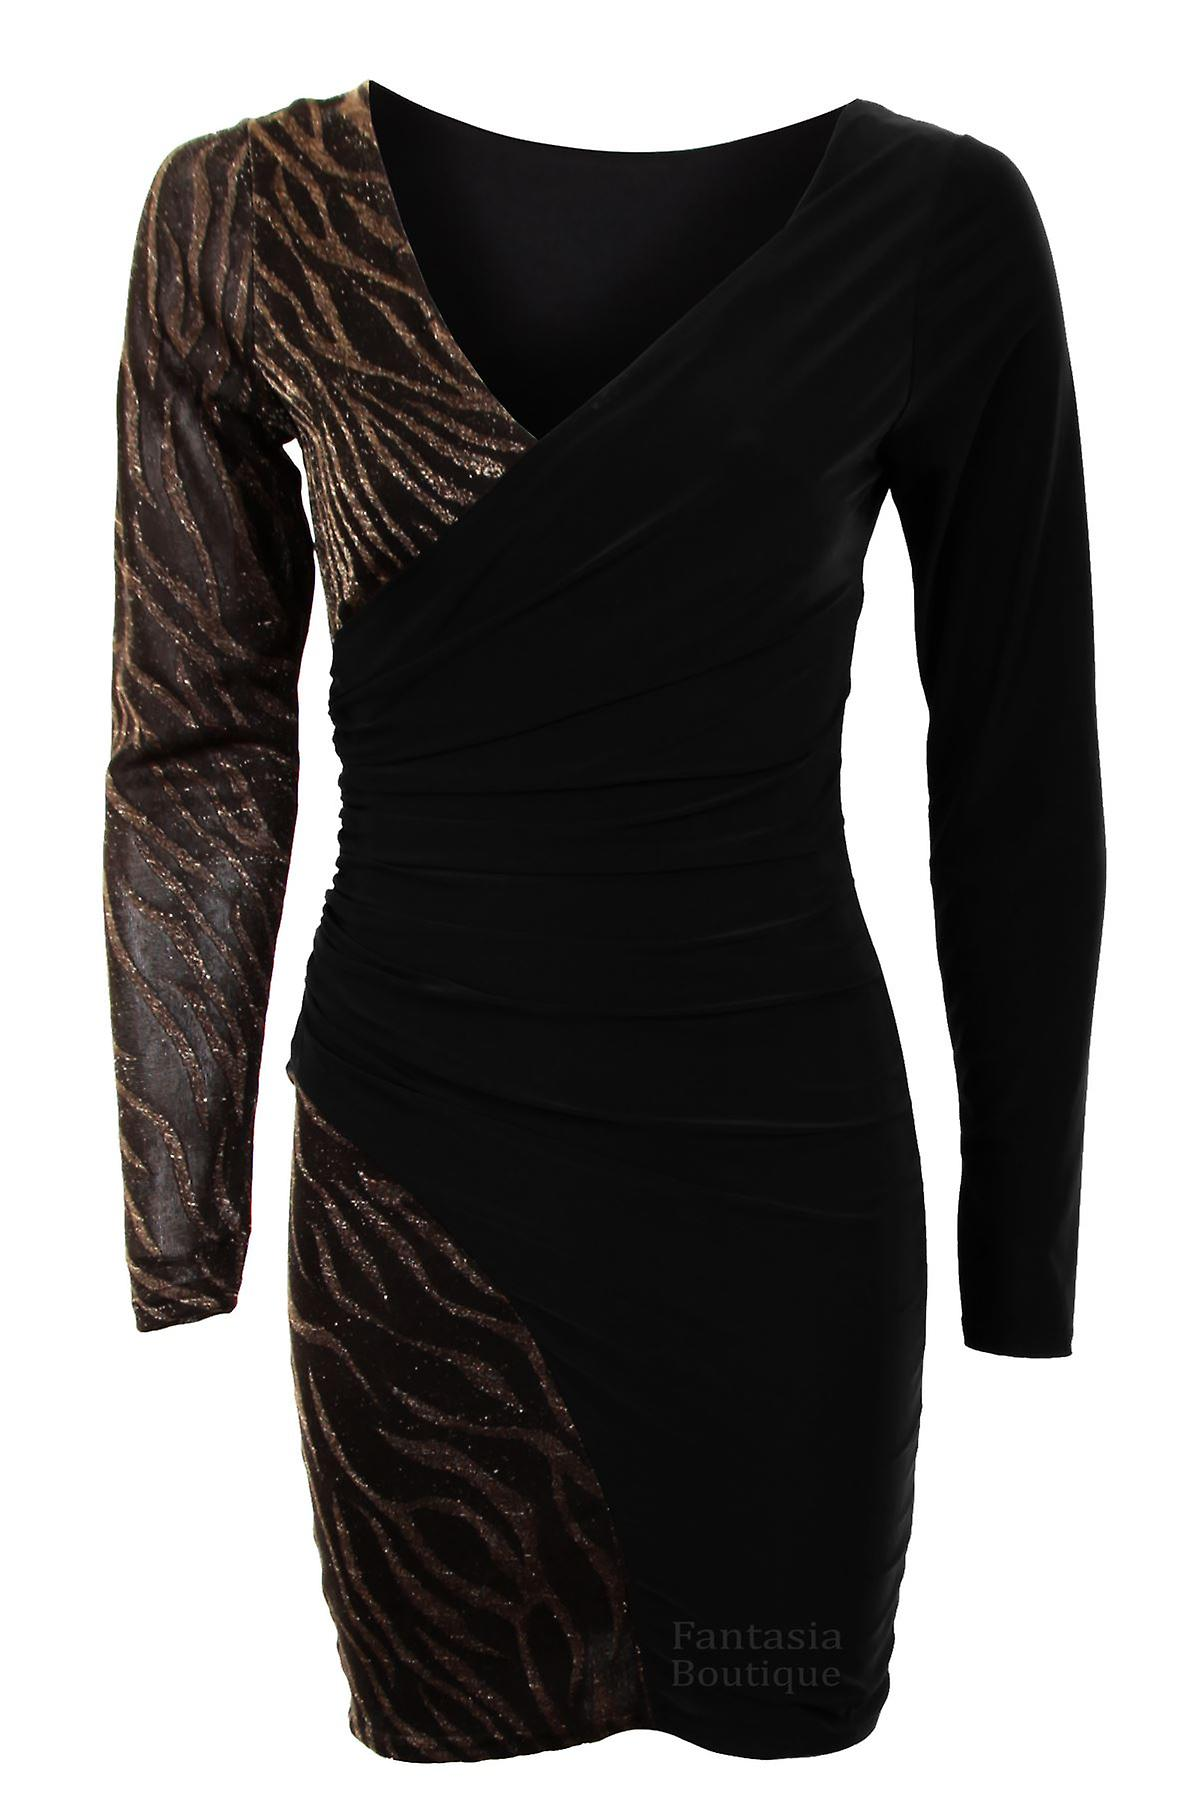 Ladies Longsleeve Cross Waterfall Contrast Tiger Glitter Women's Dress